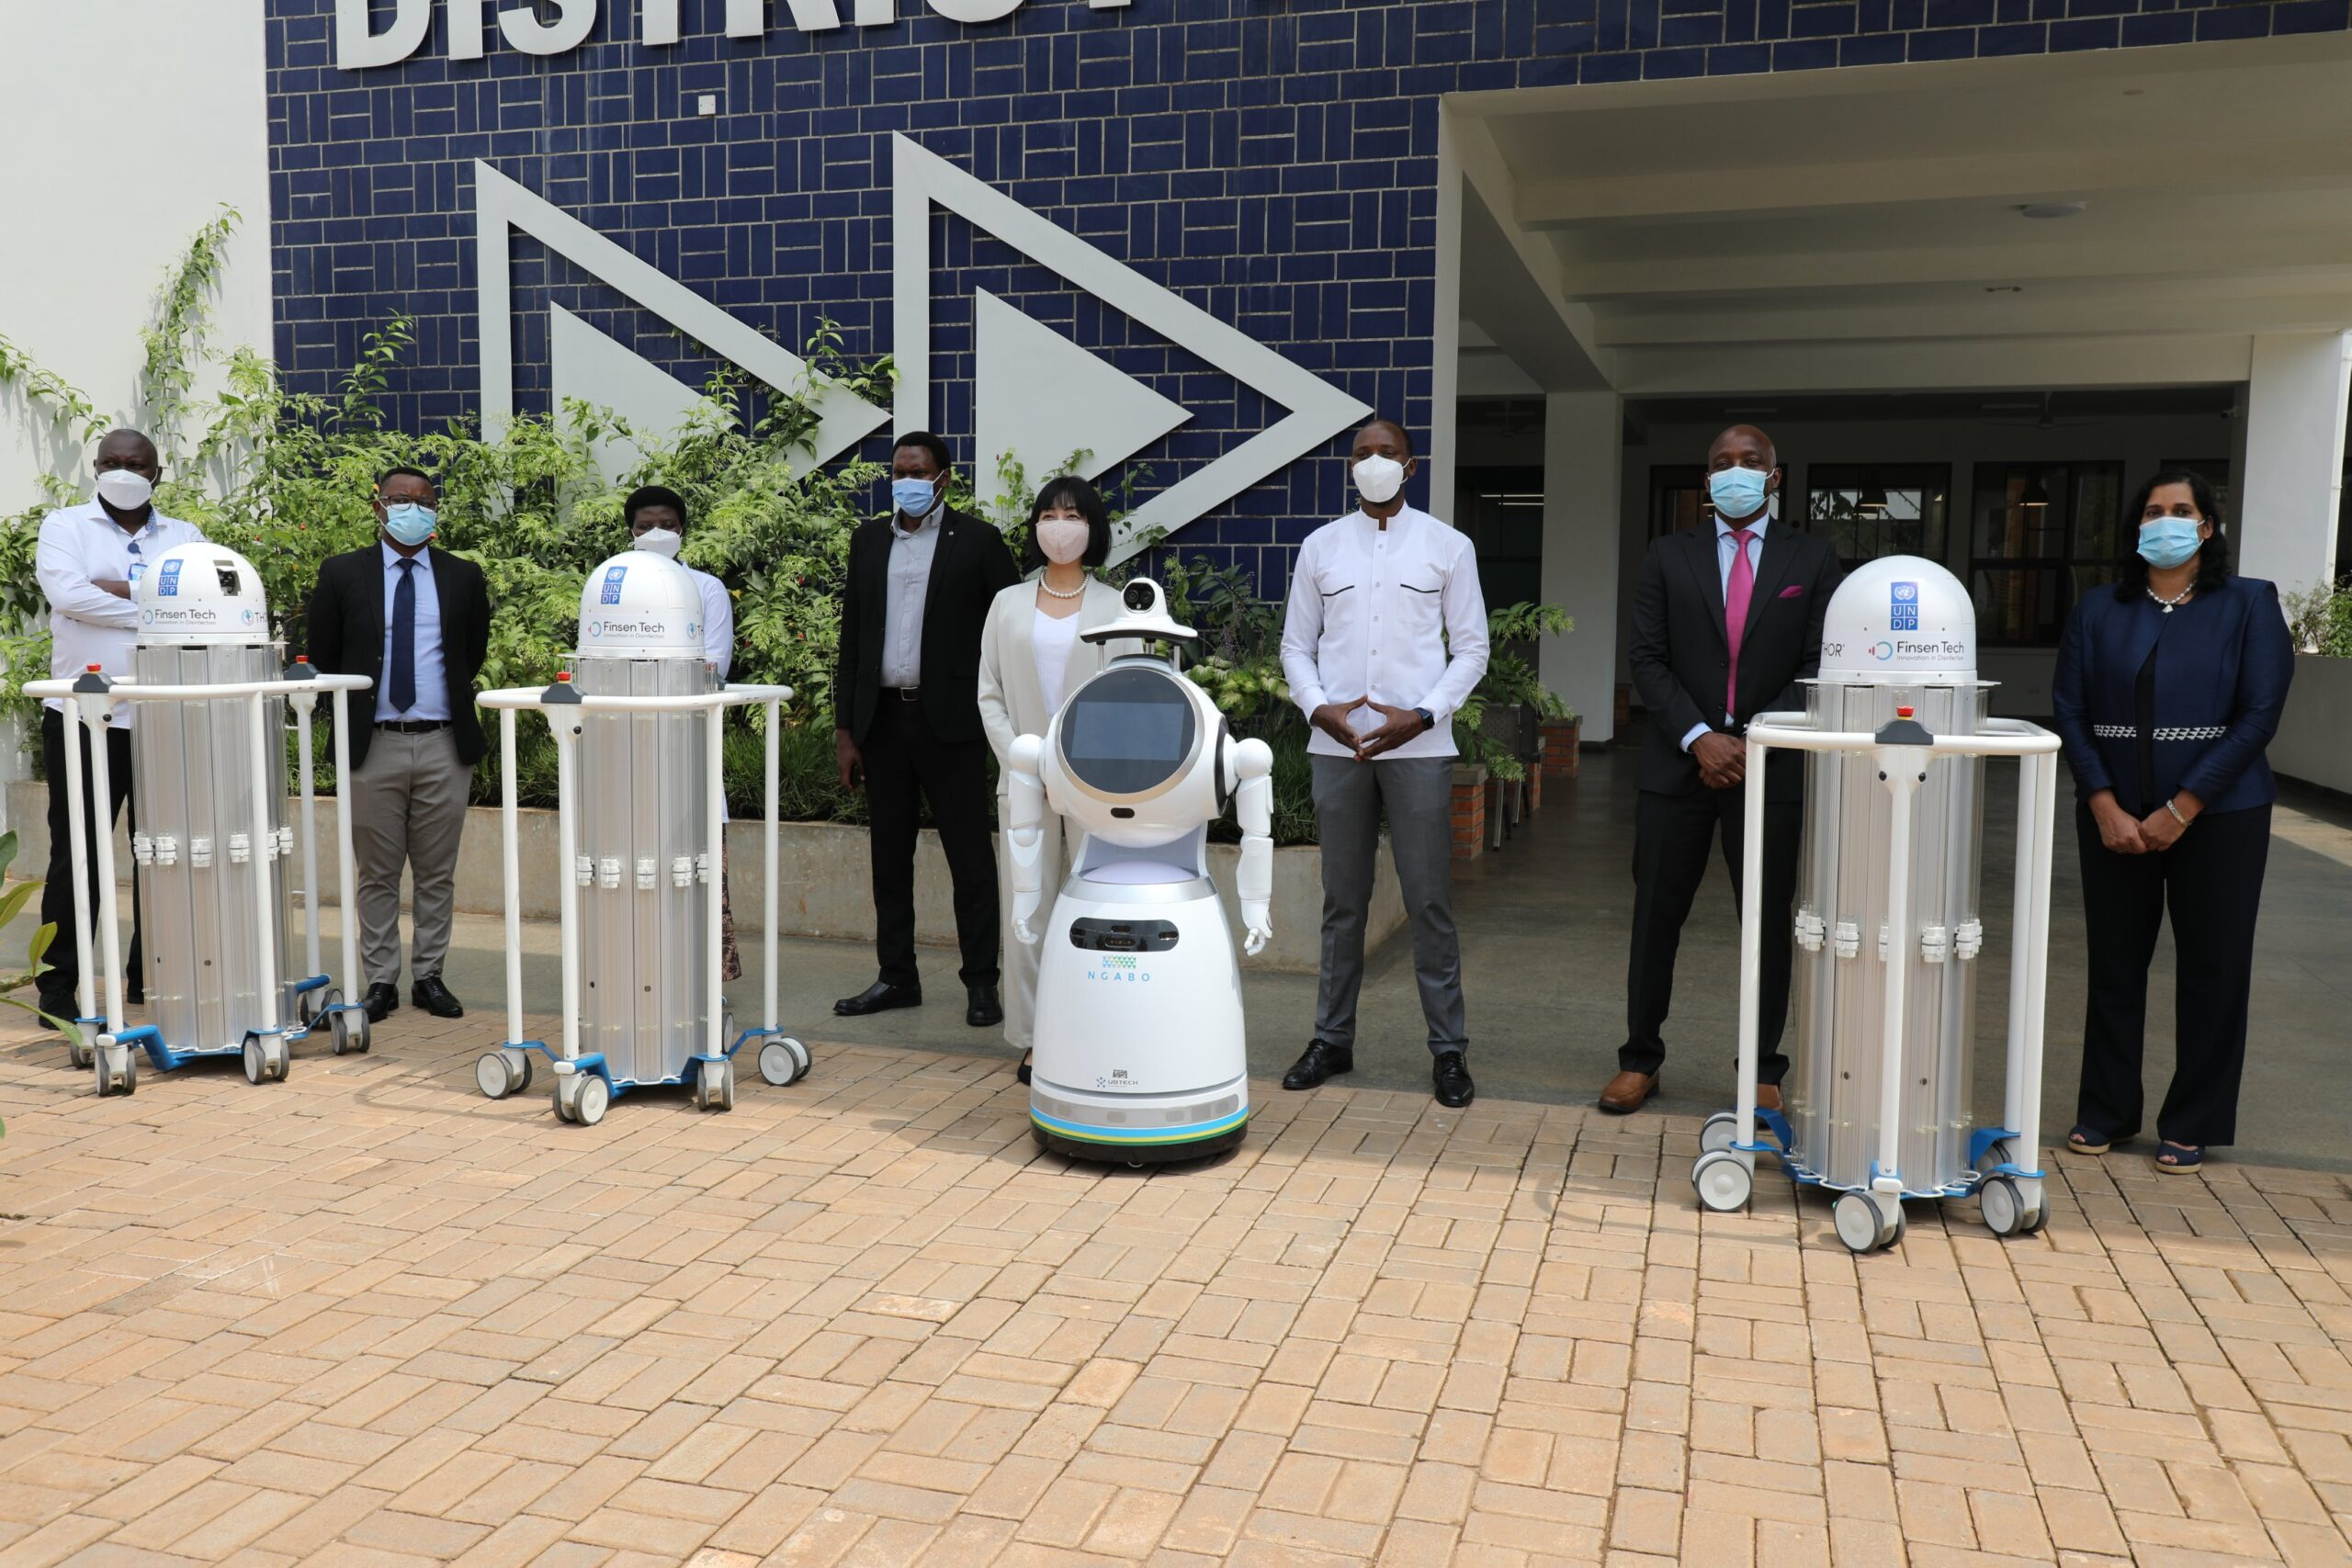 The new robots are cutting-edge Ultra Violet light robots which will help in cleaning and disinfecting treatment centres, hospitals and places of mass gathering